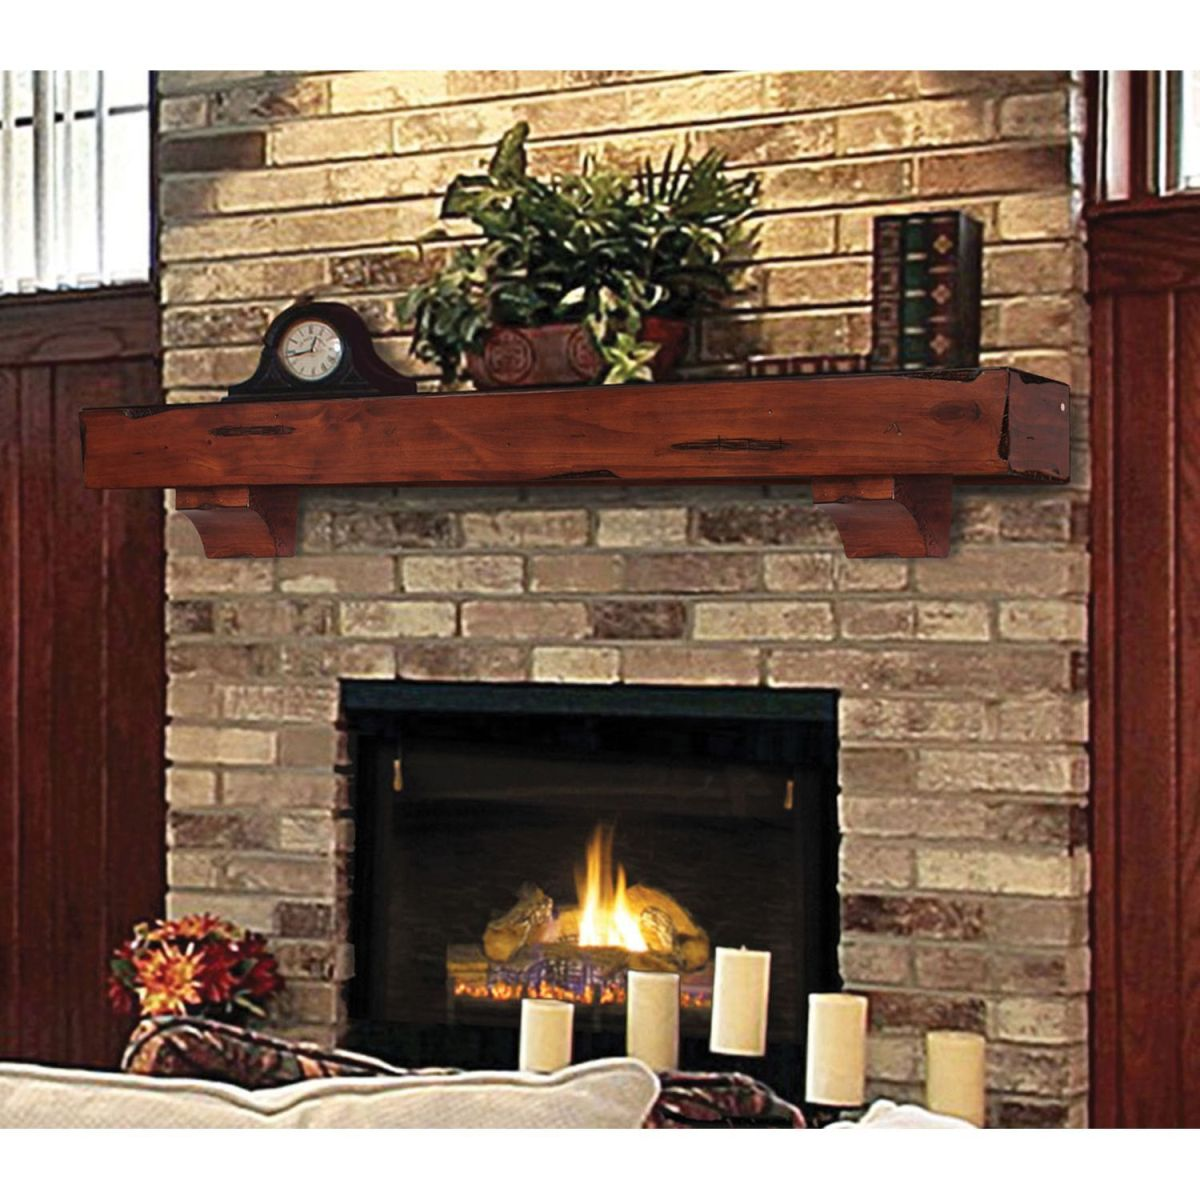 Cute rustic fireplace design ideas 31